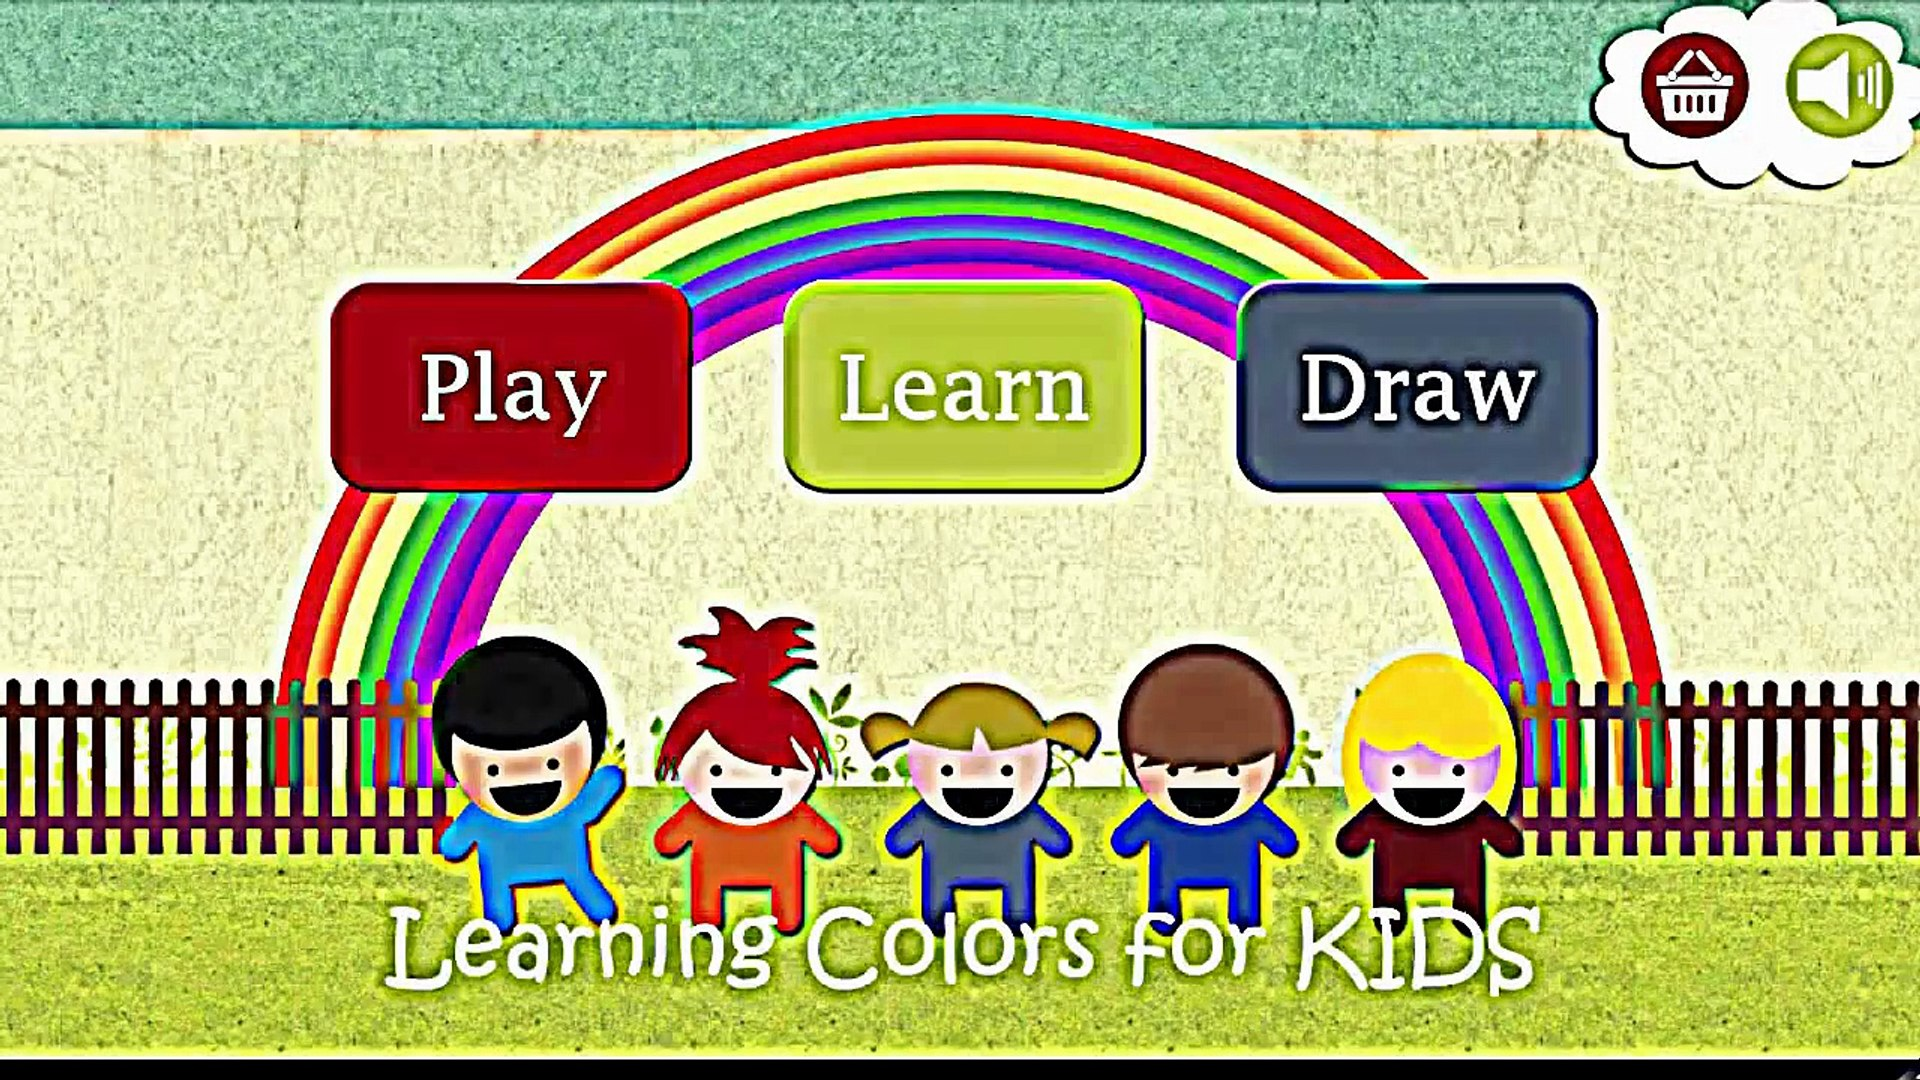 Learning Color Games for Kids to Play - Coloring Gameplay for Kids and Play